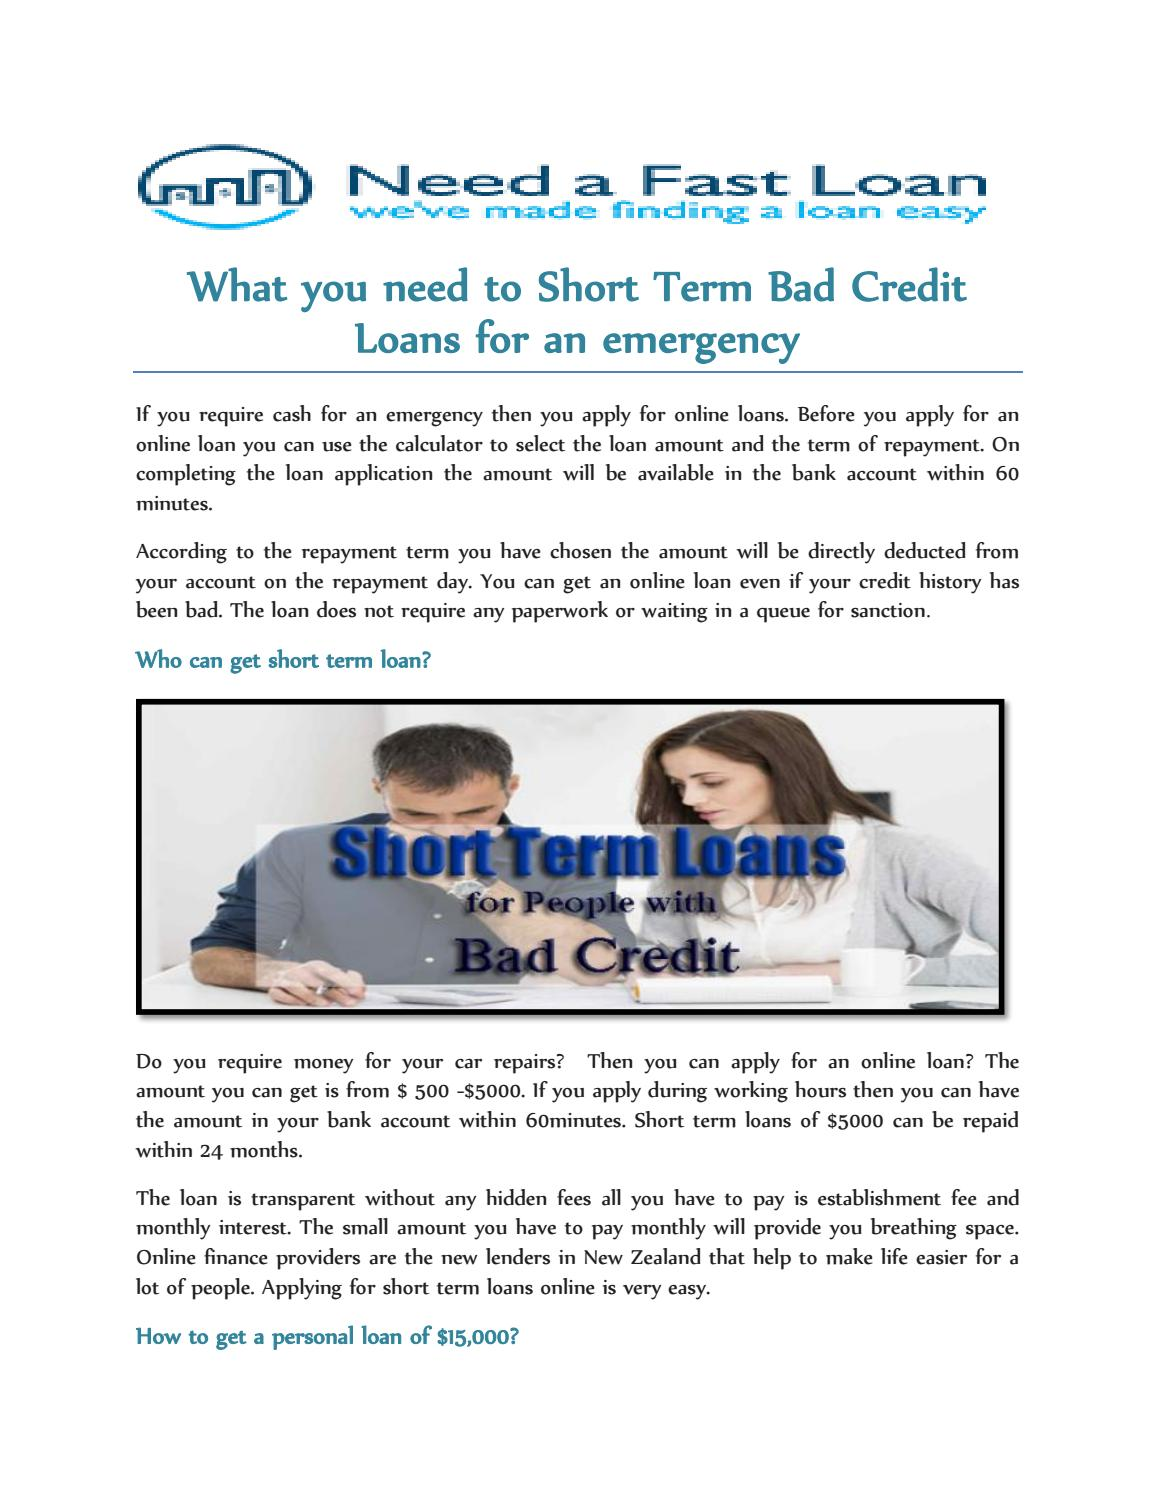 What you need to Short Term Bad Credit Loans for an emergency by